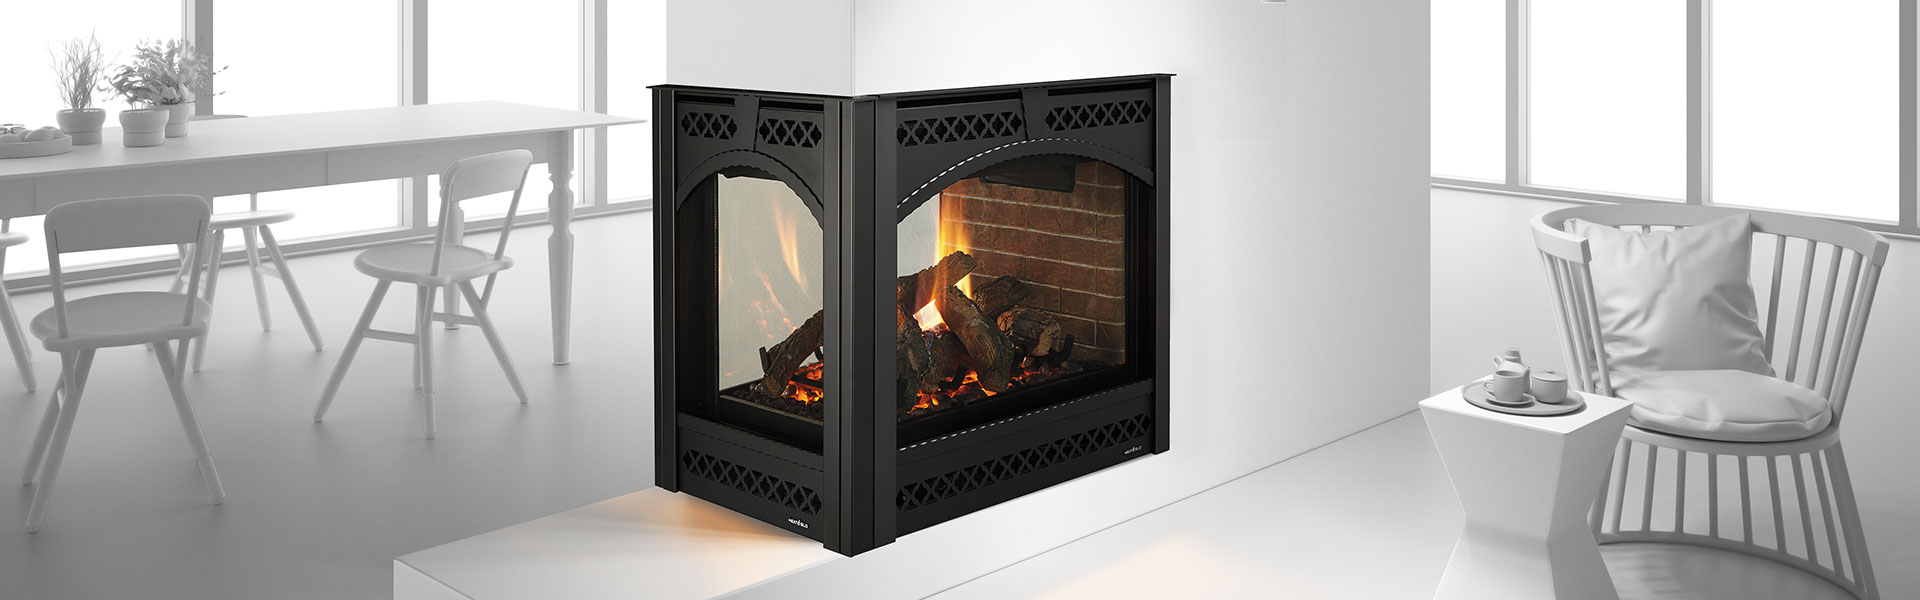 Pier See-Through Gas Fireplace with Chateaux front